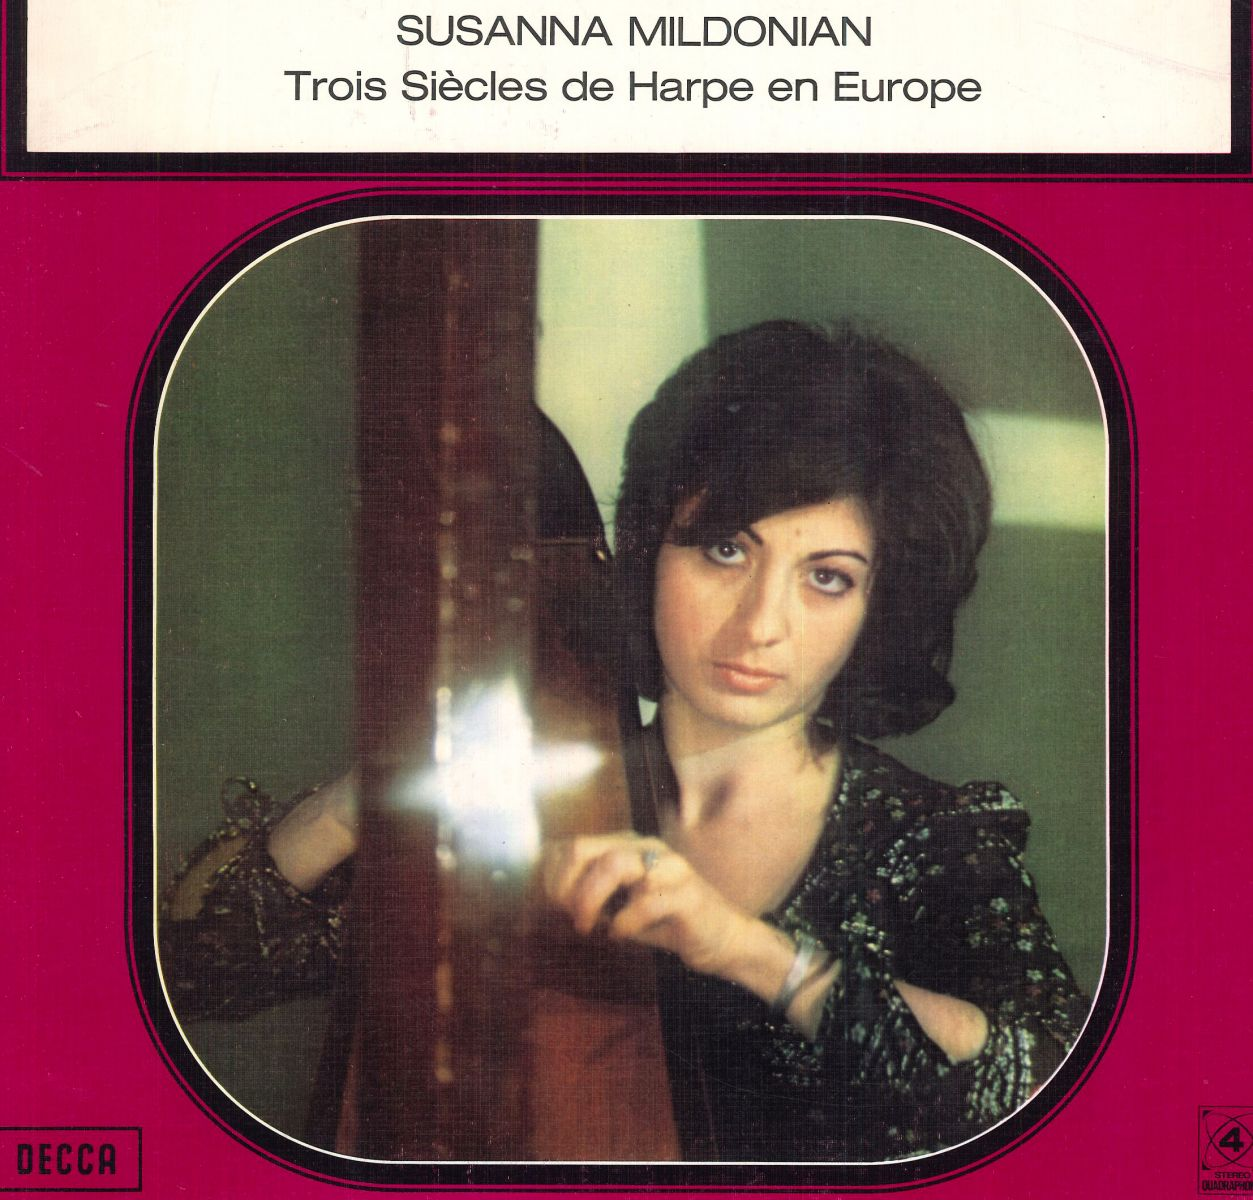 Cover fragment of the LP recording by Mildonian, label Decca.